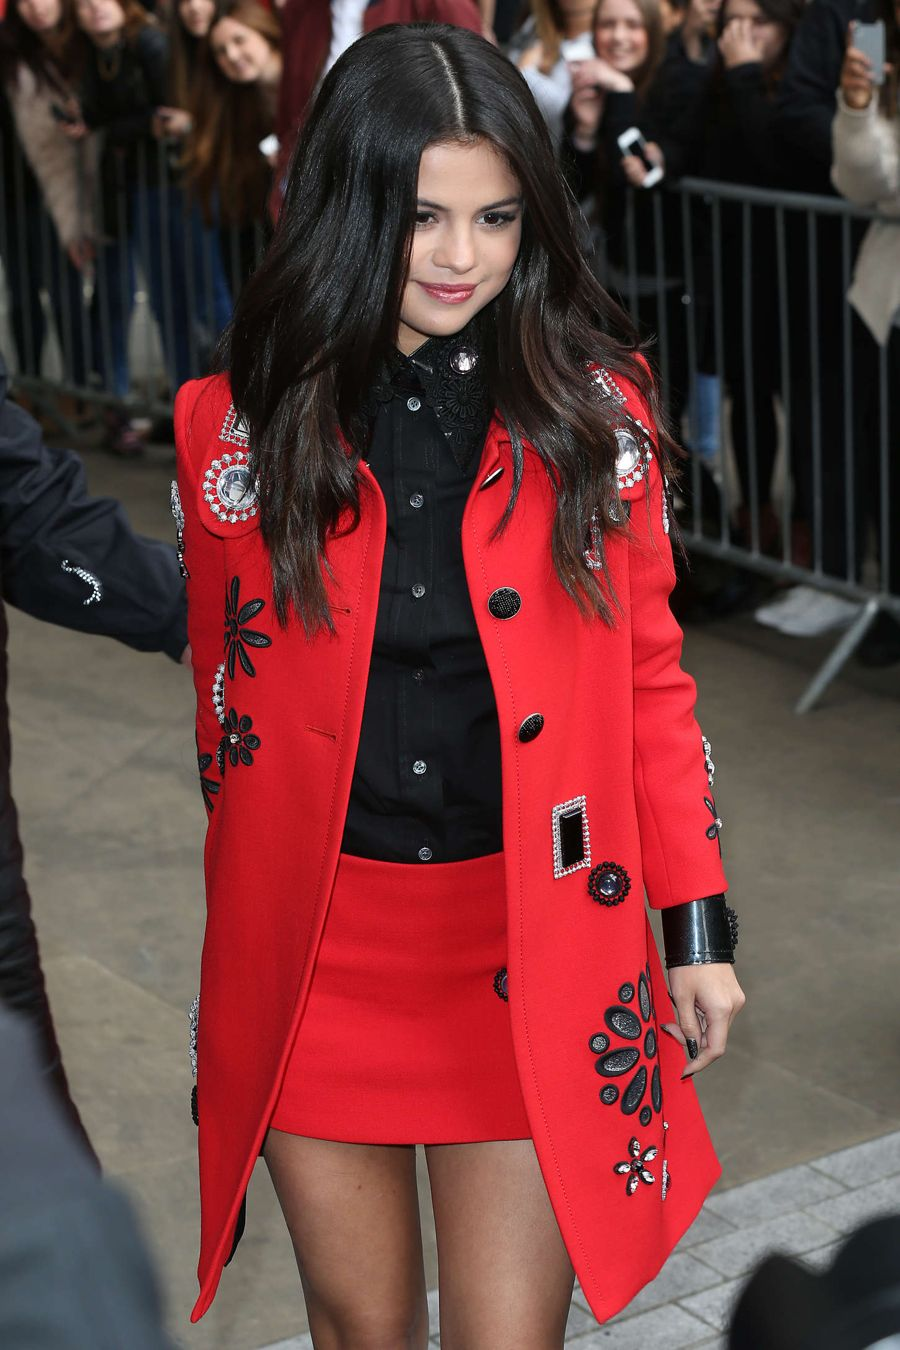 Selena Gomez - Leaving BBC Radio1 in London